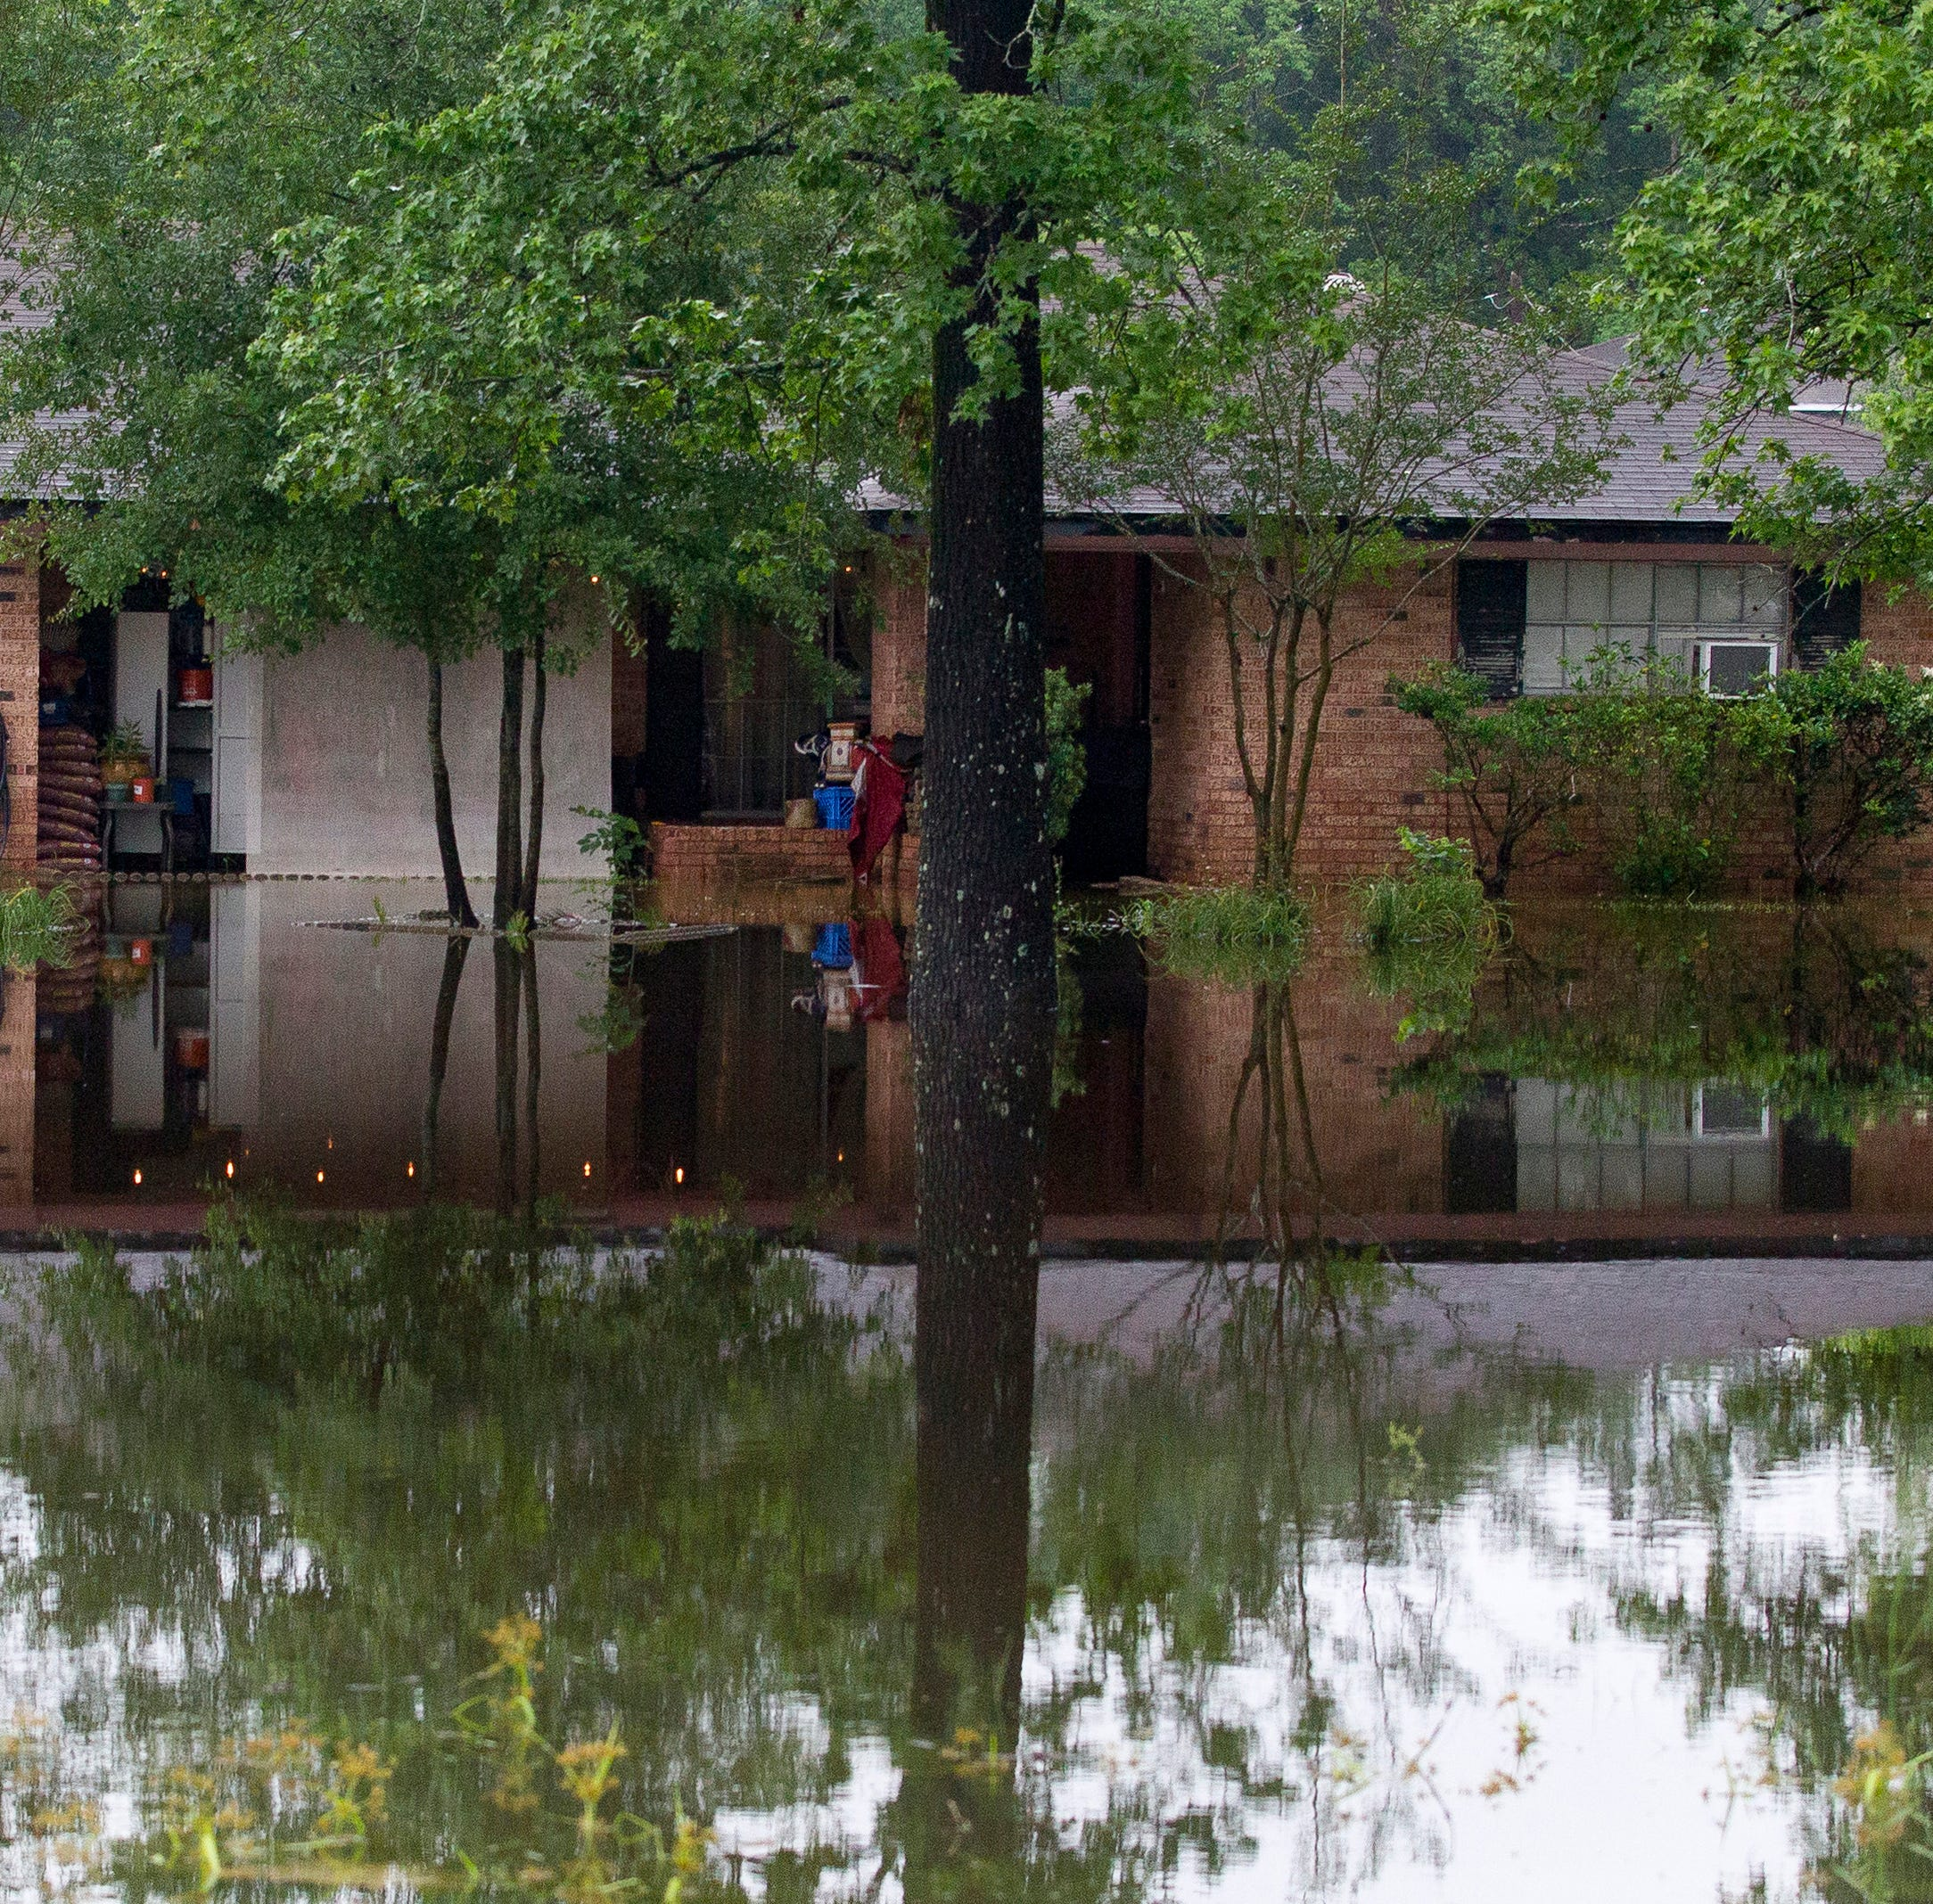 Houston braces for more flooding; Louisiana declares state of emergency